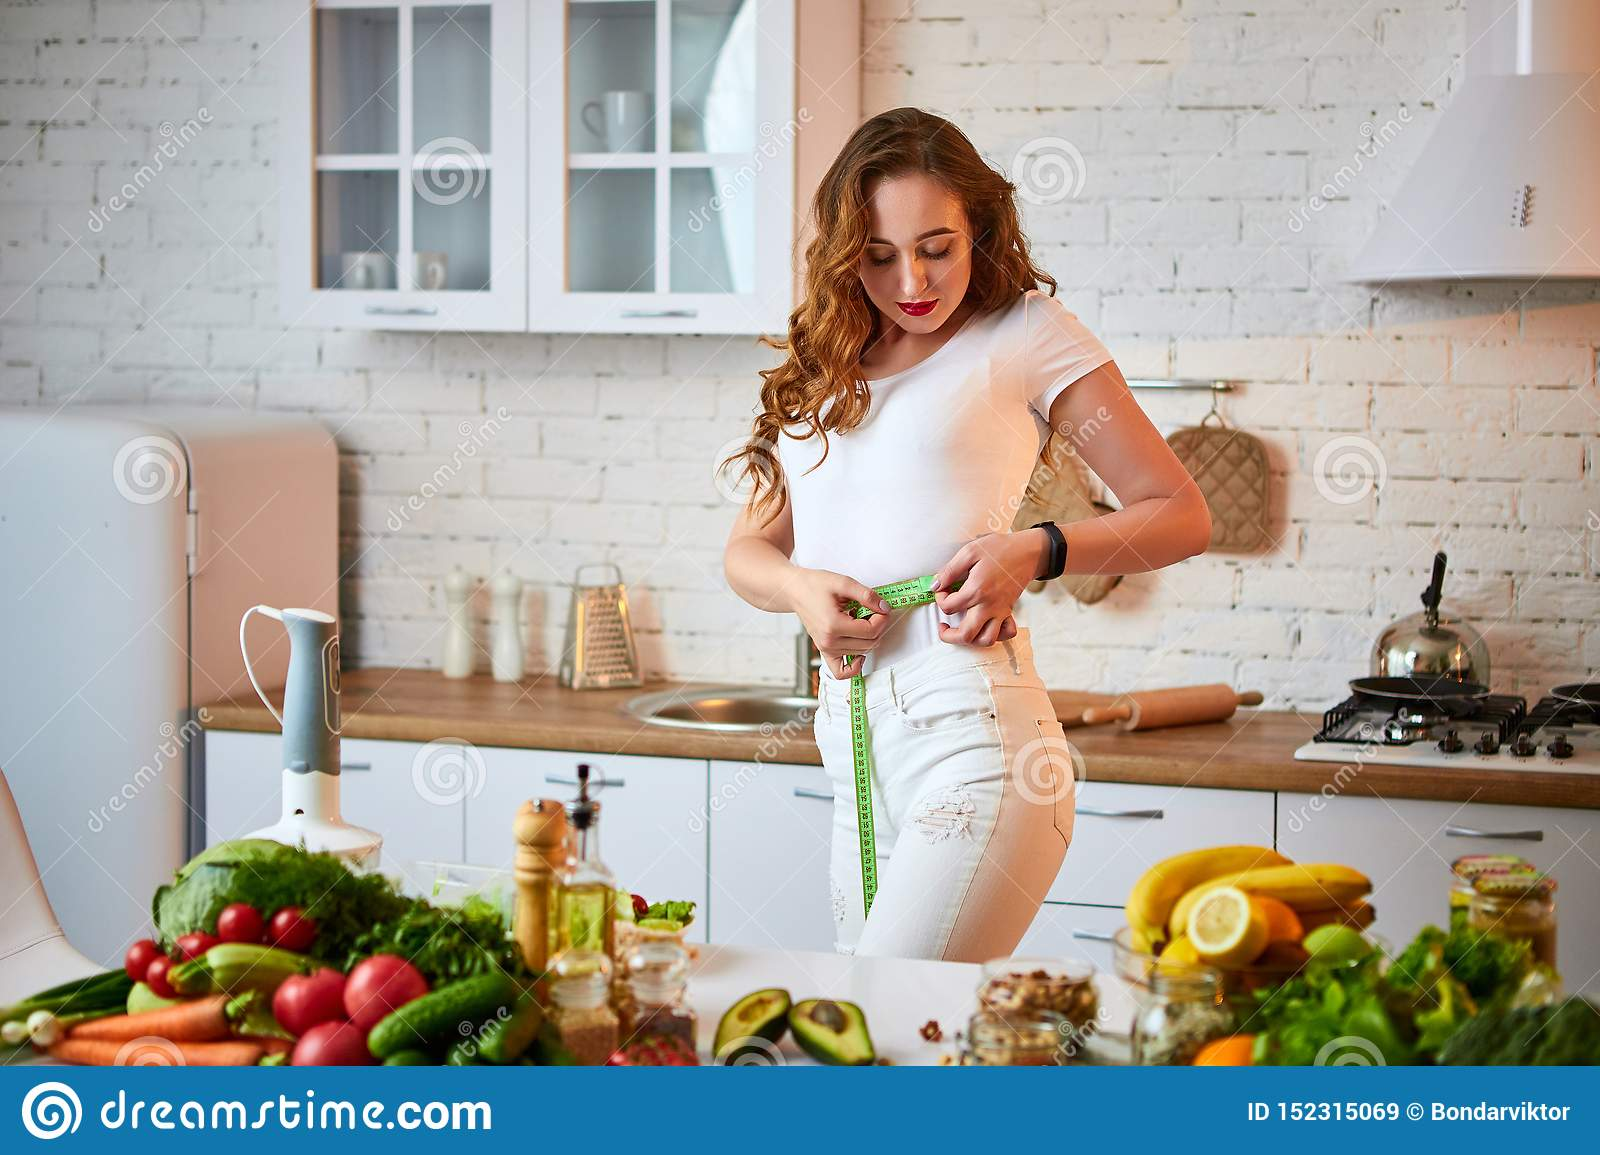 Woman measuring perfect shape of beautiful waist with green tape centimeter. Healthy Lifestyle and Eating. Health, Beauty, Diet